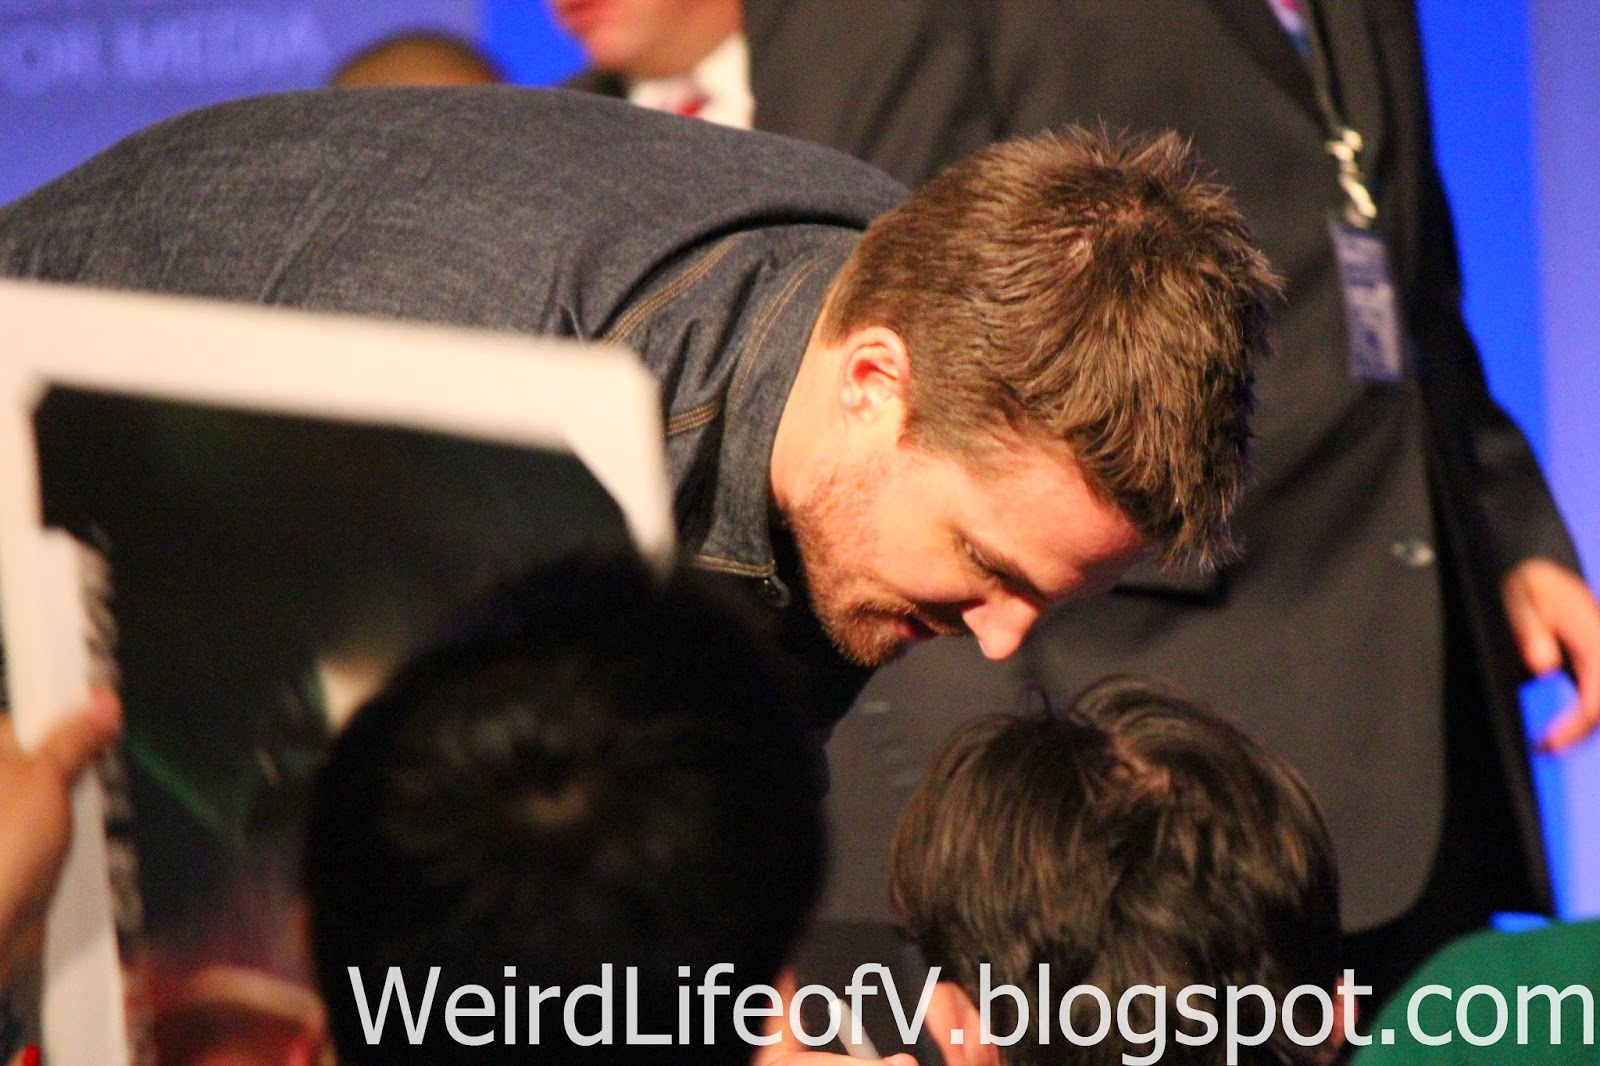 Stephen Amell signing autographs